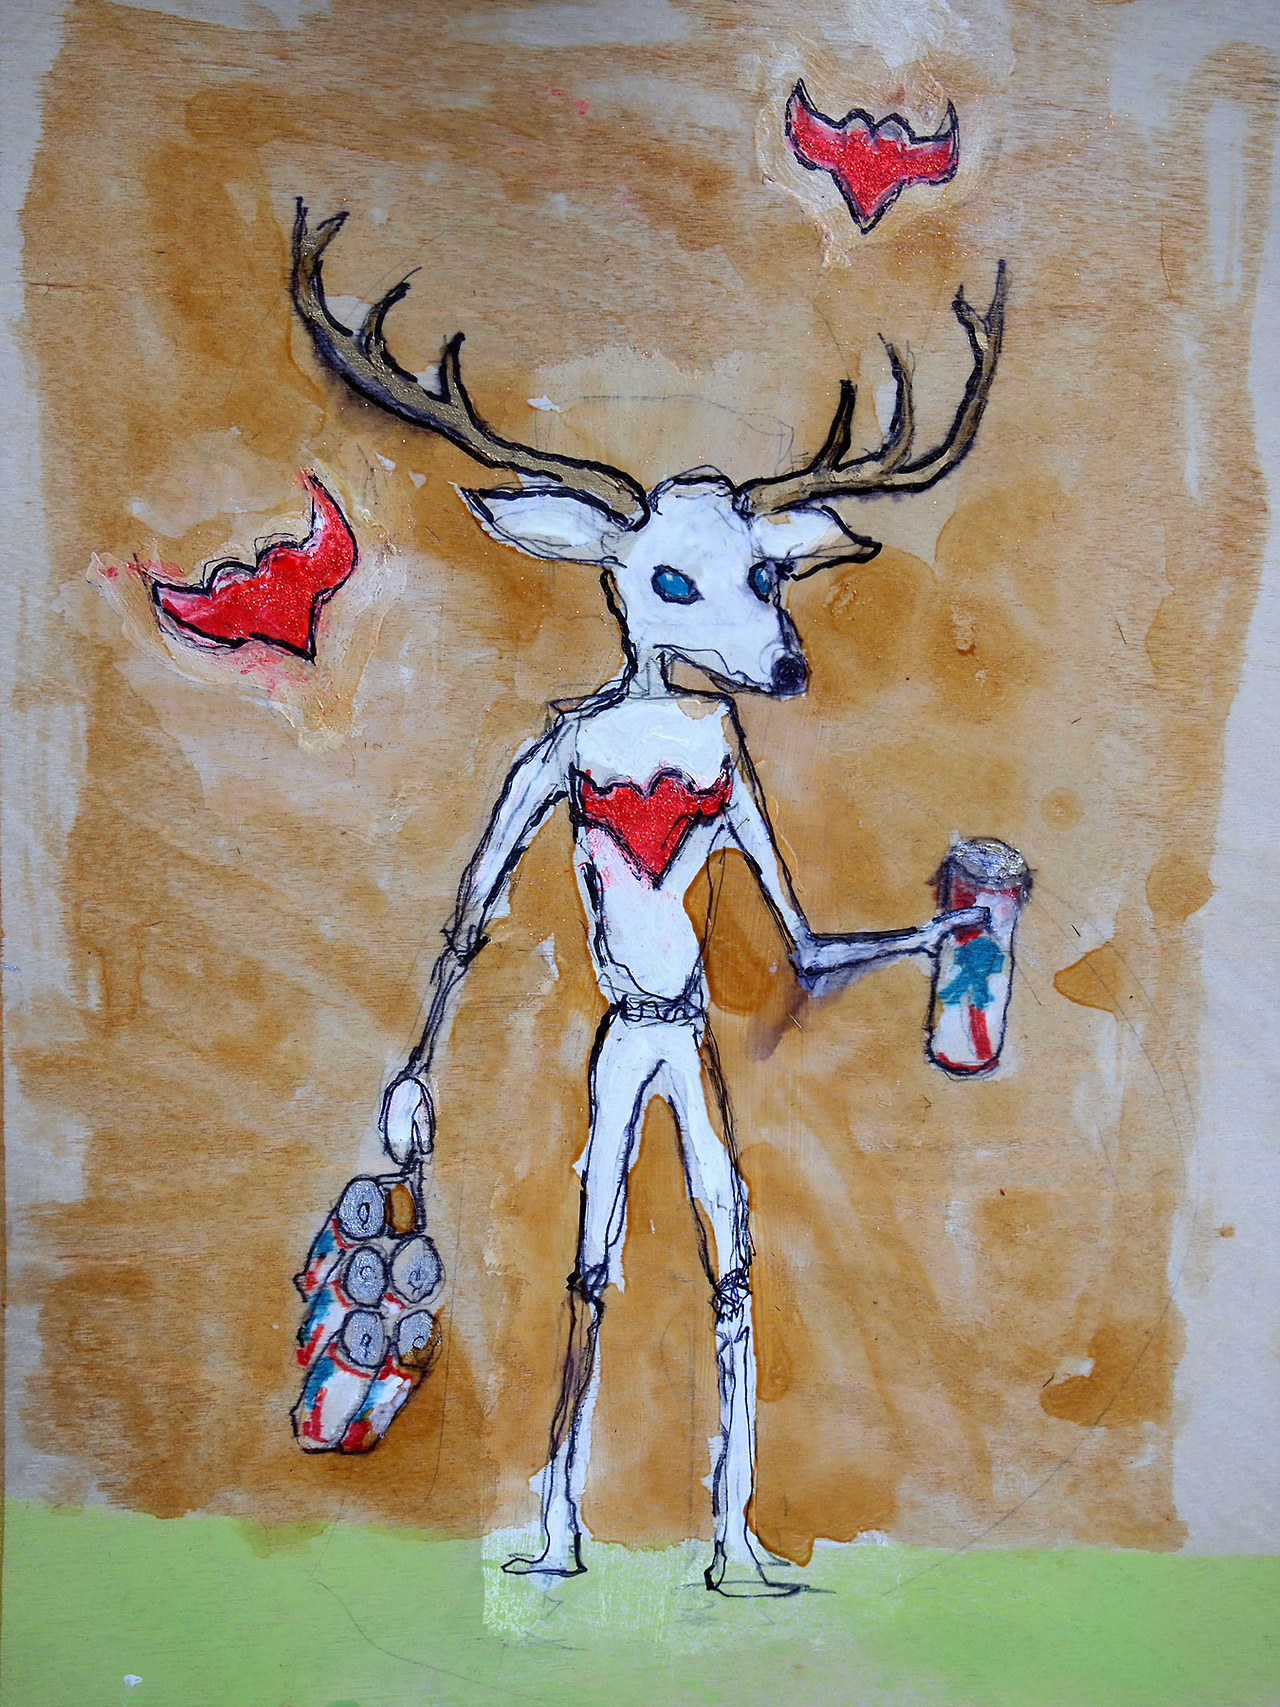 "2/21/13  Deer Eyes, Bull Hearts, Canned Booze.       A while back a friend of mine gave me an unfinished piece of her artwork and told me to finish it, which I did. That is, if by finishing it she meant make it a whole, whole lot worse. Anyway, this is sort of a tribute to that piece   9"" x 12""   acrylic, shellac, marker, pencil, glow-in-the-dark paint, clear spray paint on wood panel."